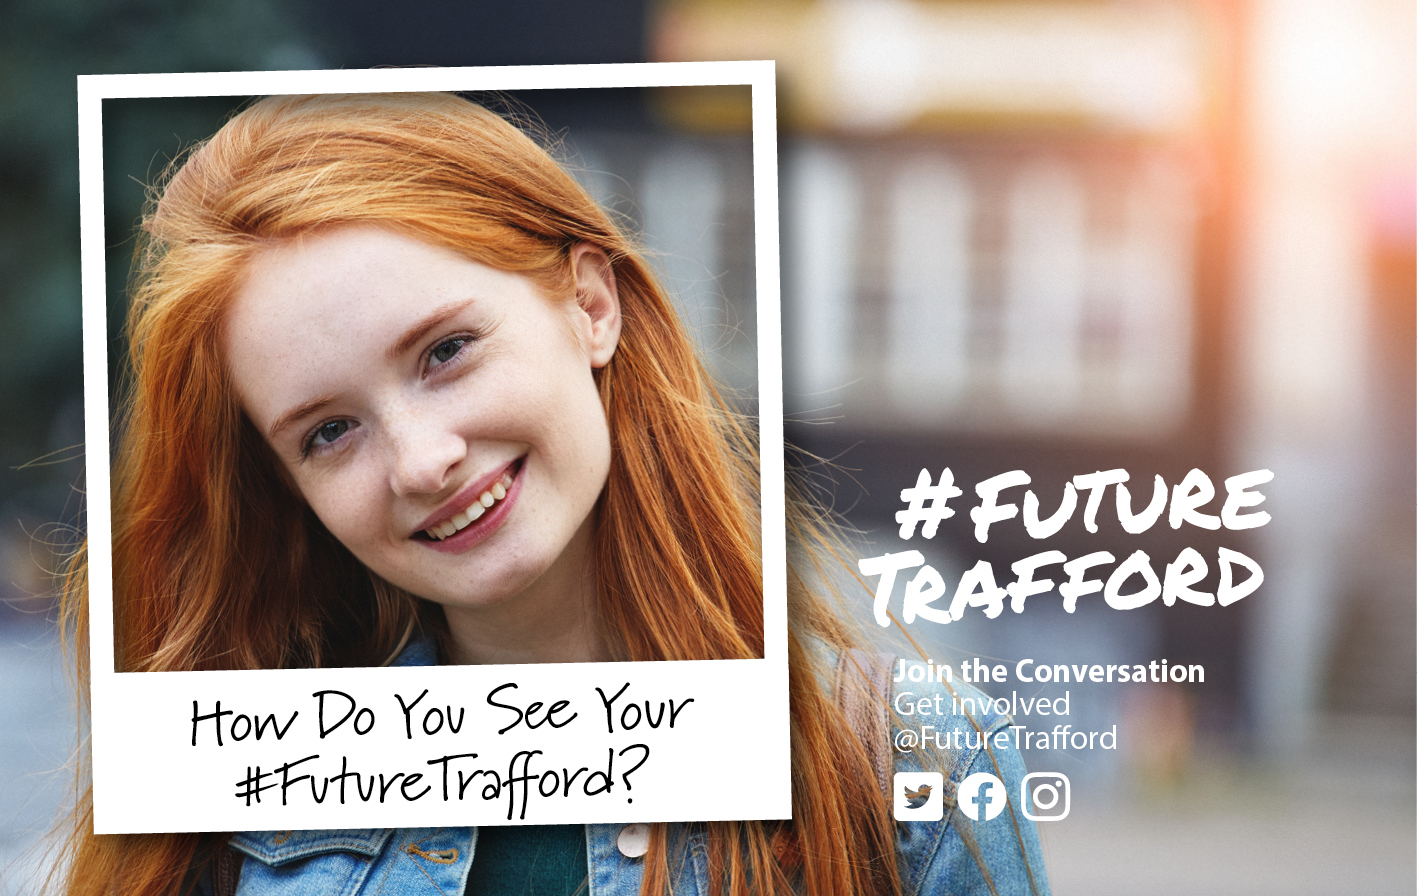 FutureTrafford join the conversation image of a twenty something woman